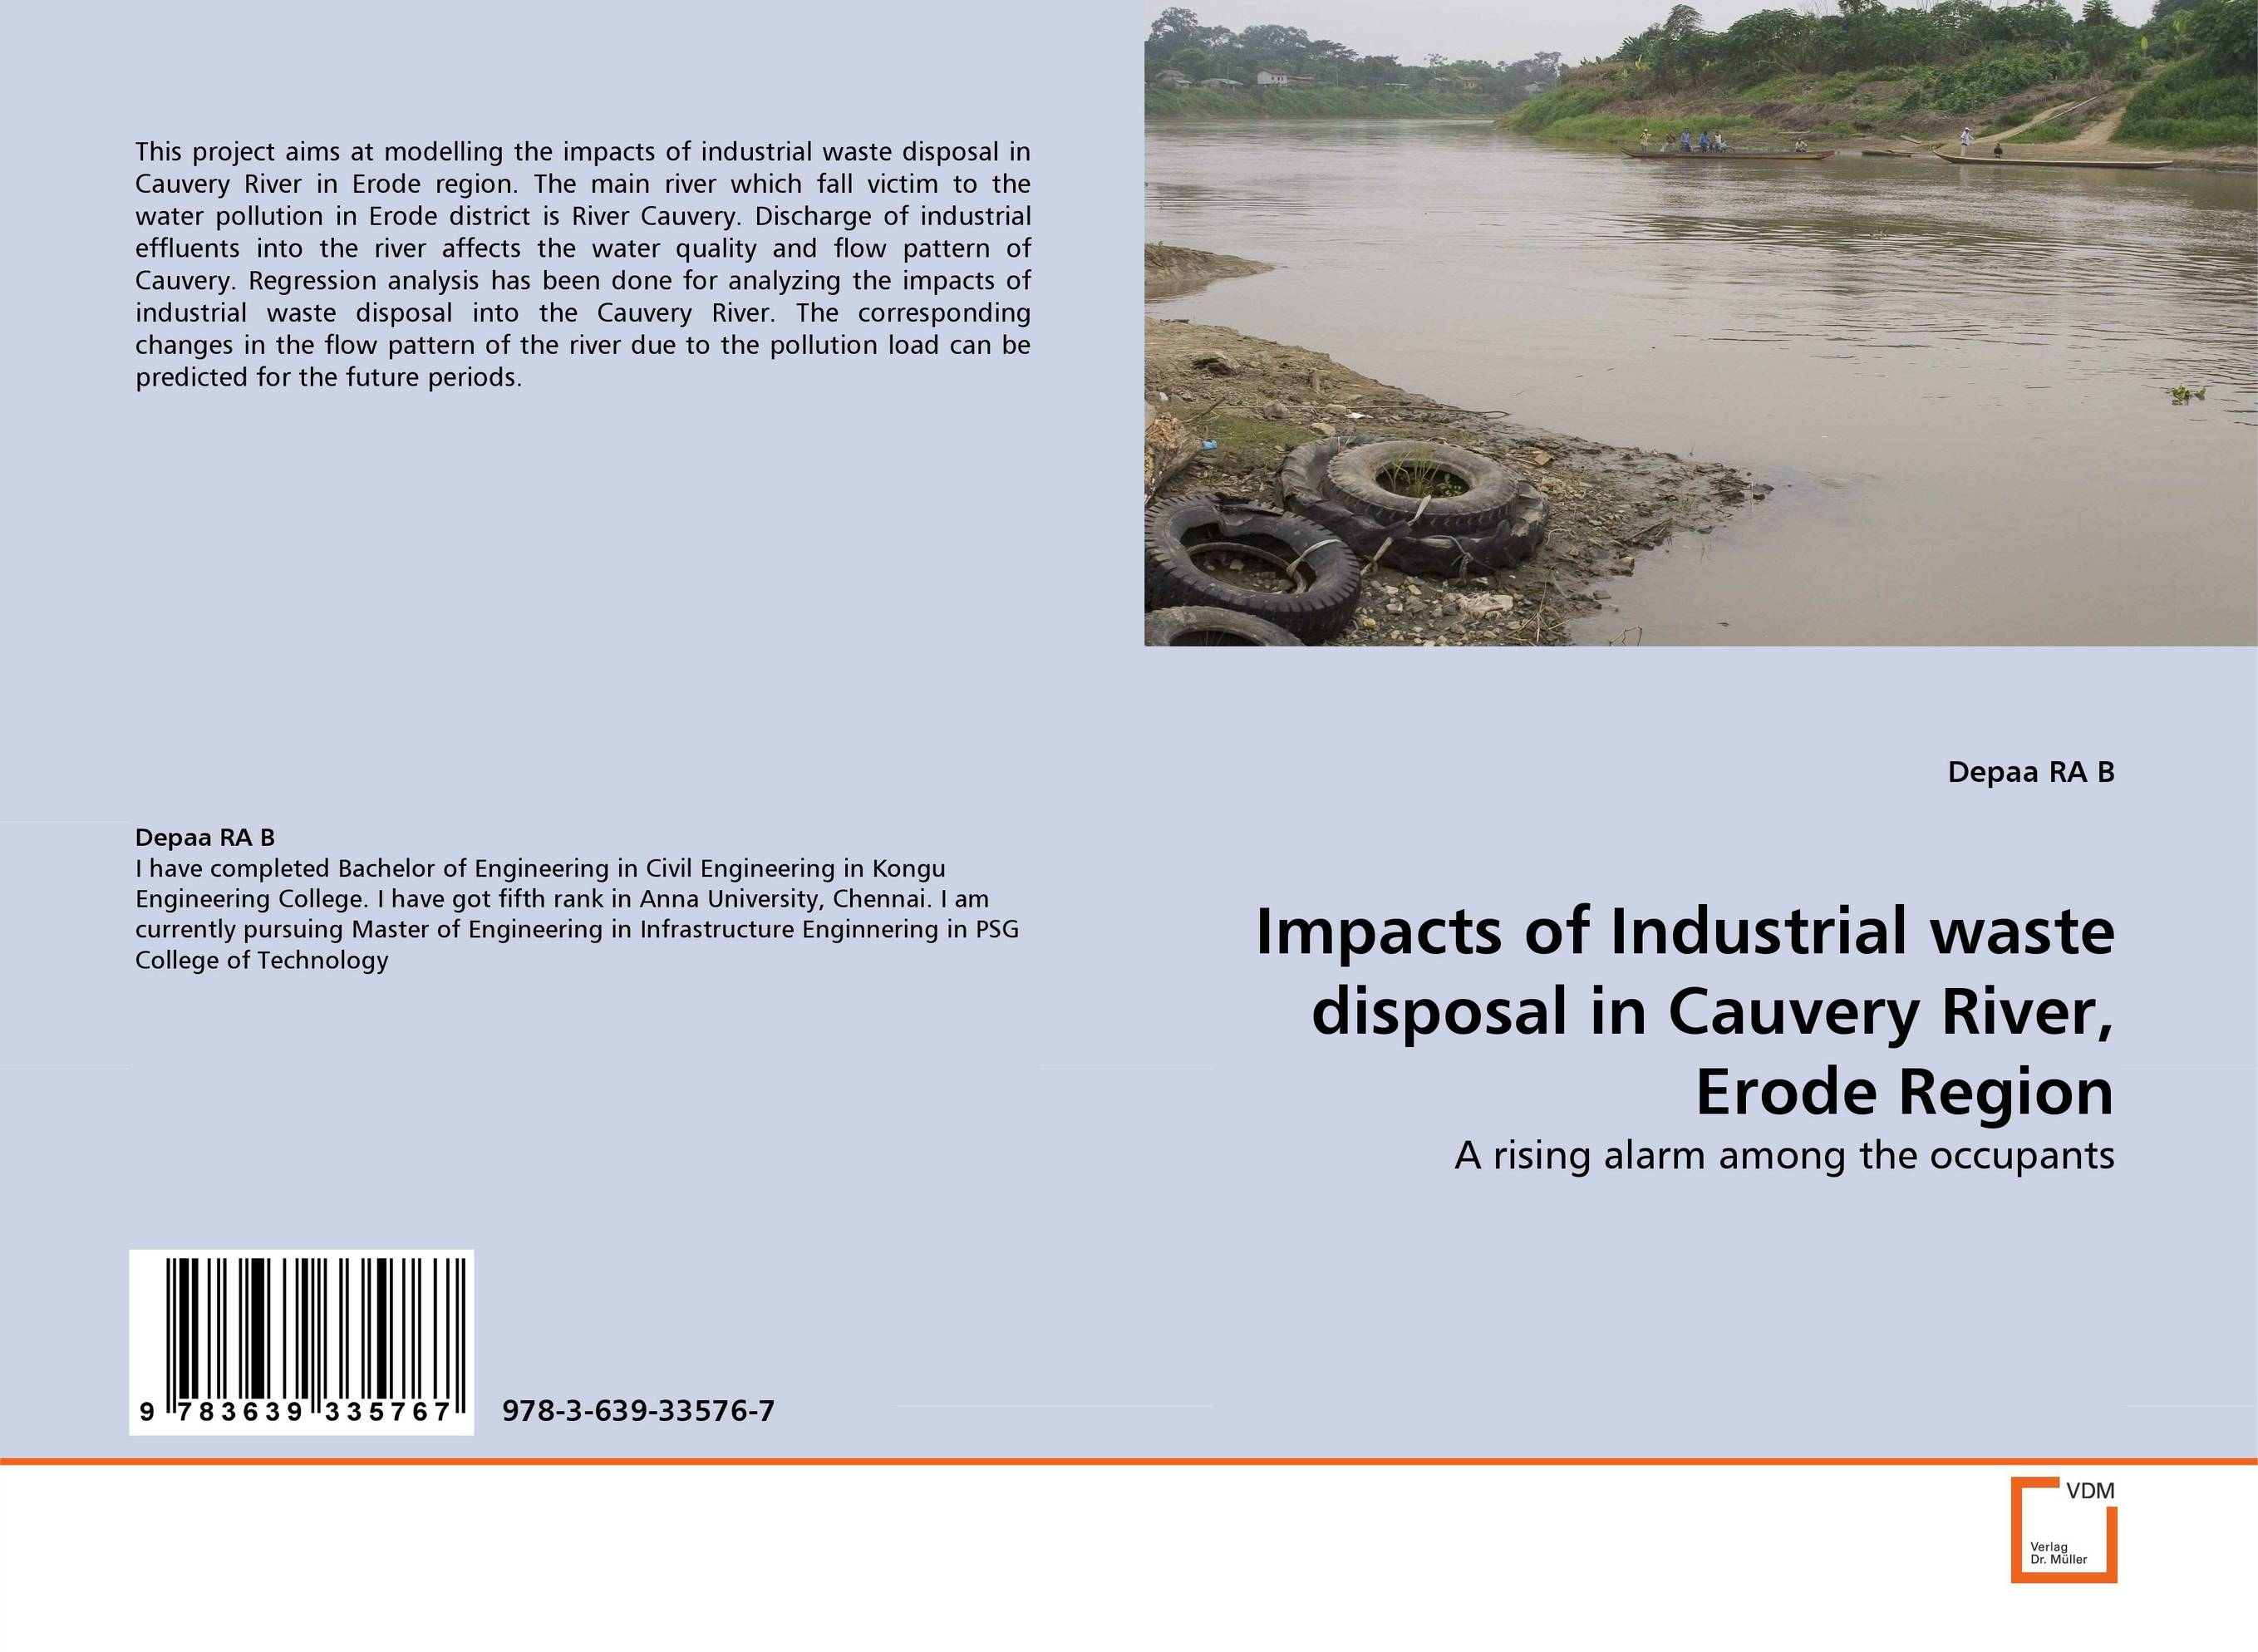 Impacts of Industrial waste disposal in Cauvery River, Erode Region